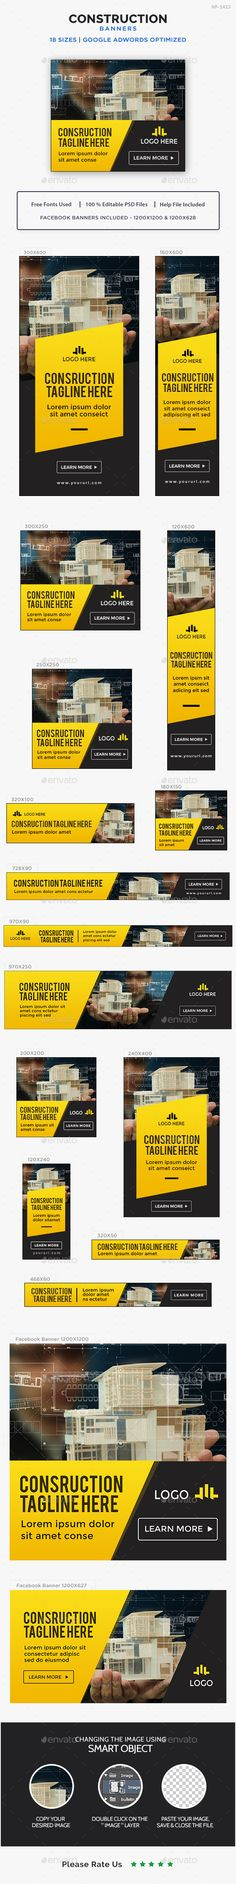 Construction Banners Design Template - Banners & Ads Web Template PSD. Download here: https://graphicriver.net/item/construction-banners/17034796?s_rank=280&ref=yinkira